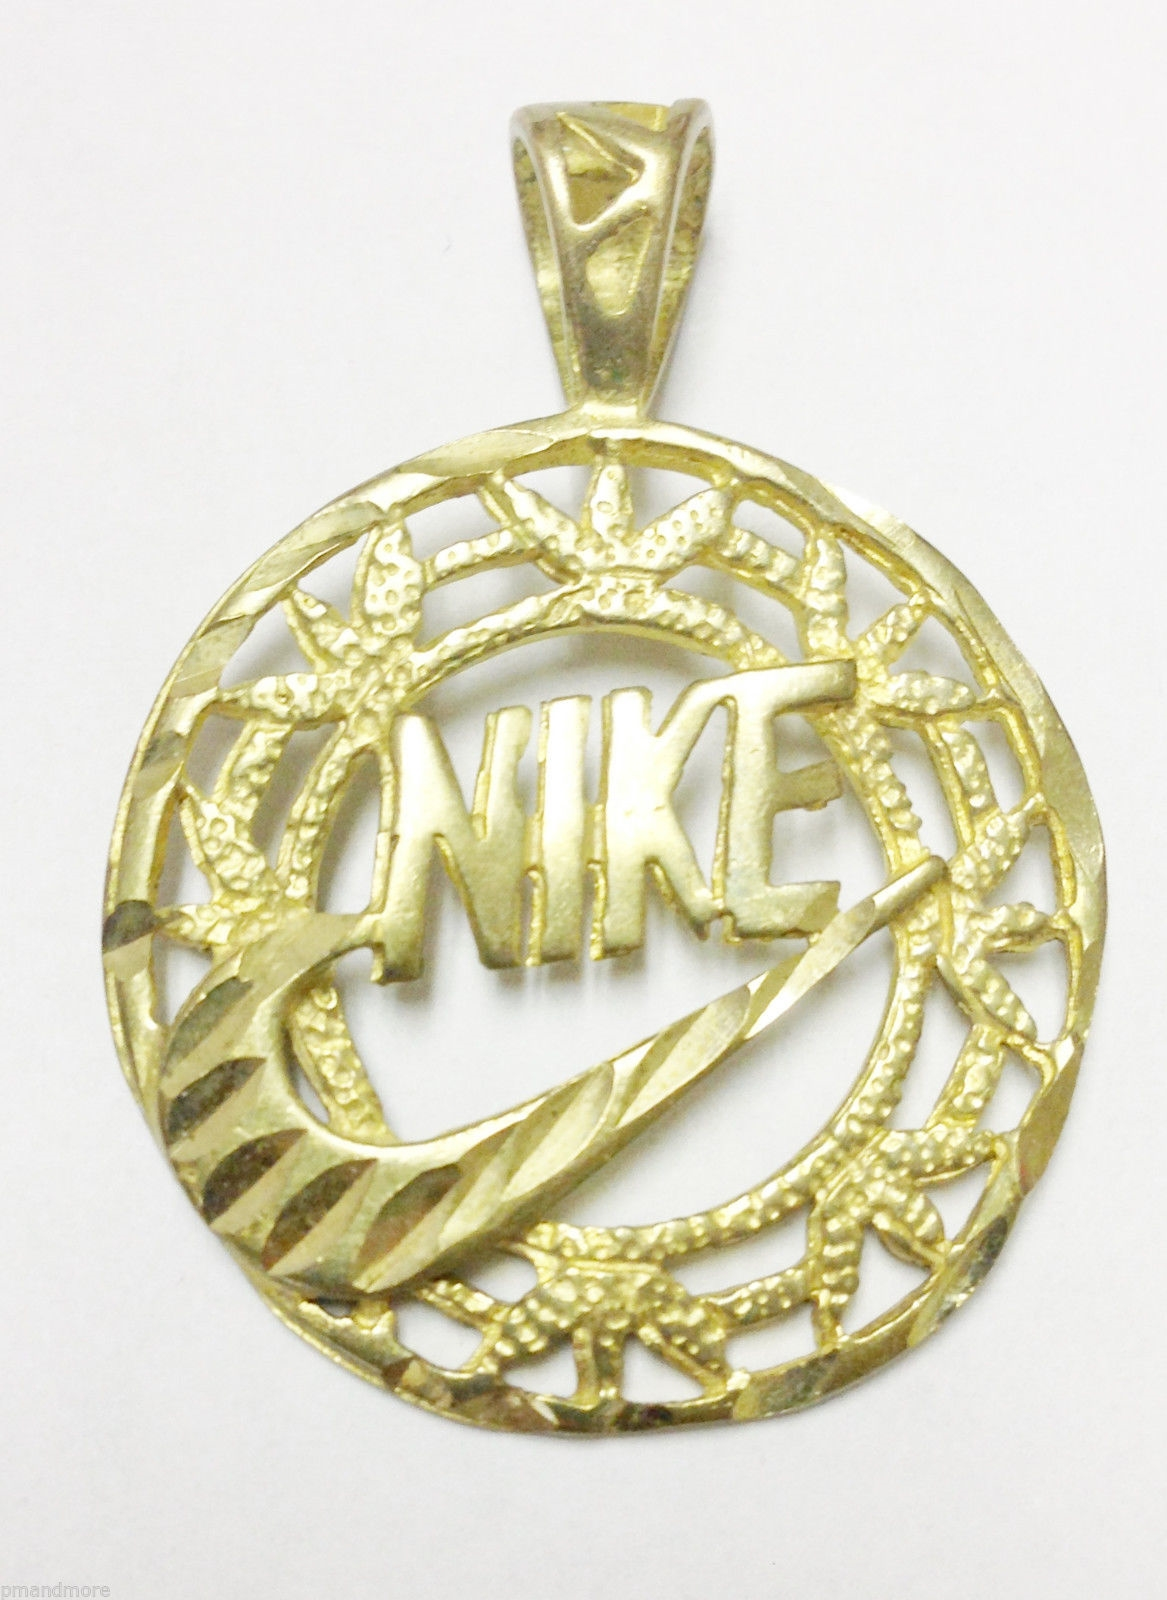 HARD TO FIND & UNIQUE 14K SOLID YELLOW GOLD NIKE PENDANT - 5.2 GRAMS - FREE S&H